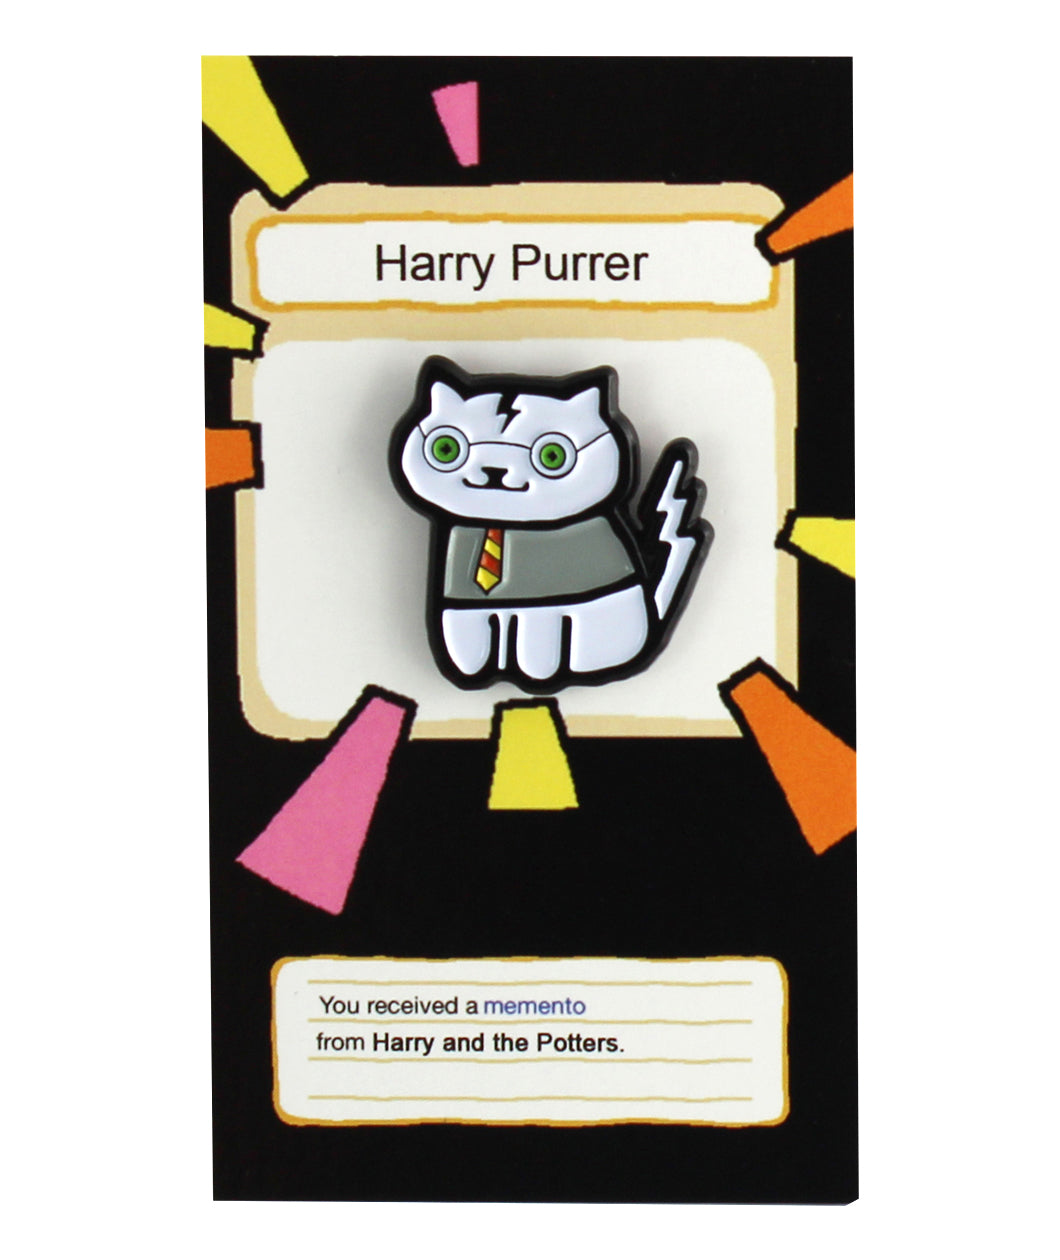 Harry Purrer/Neko Atsume Enamel Pin